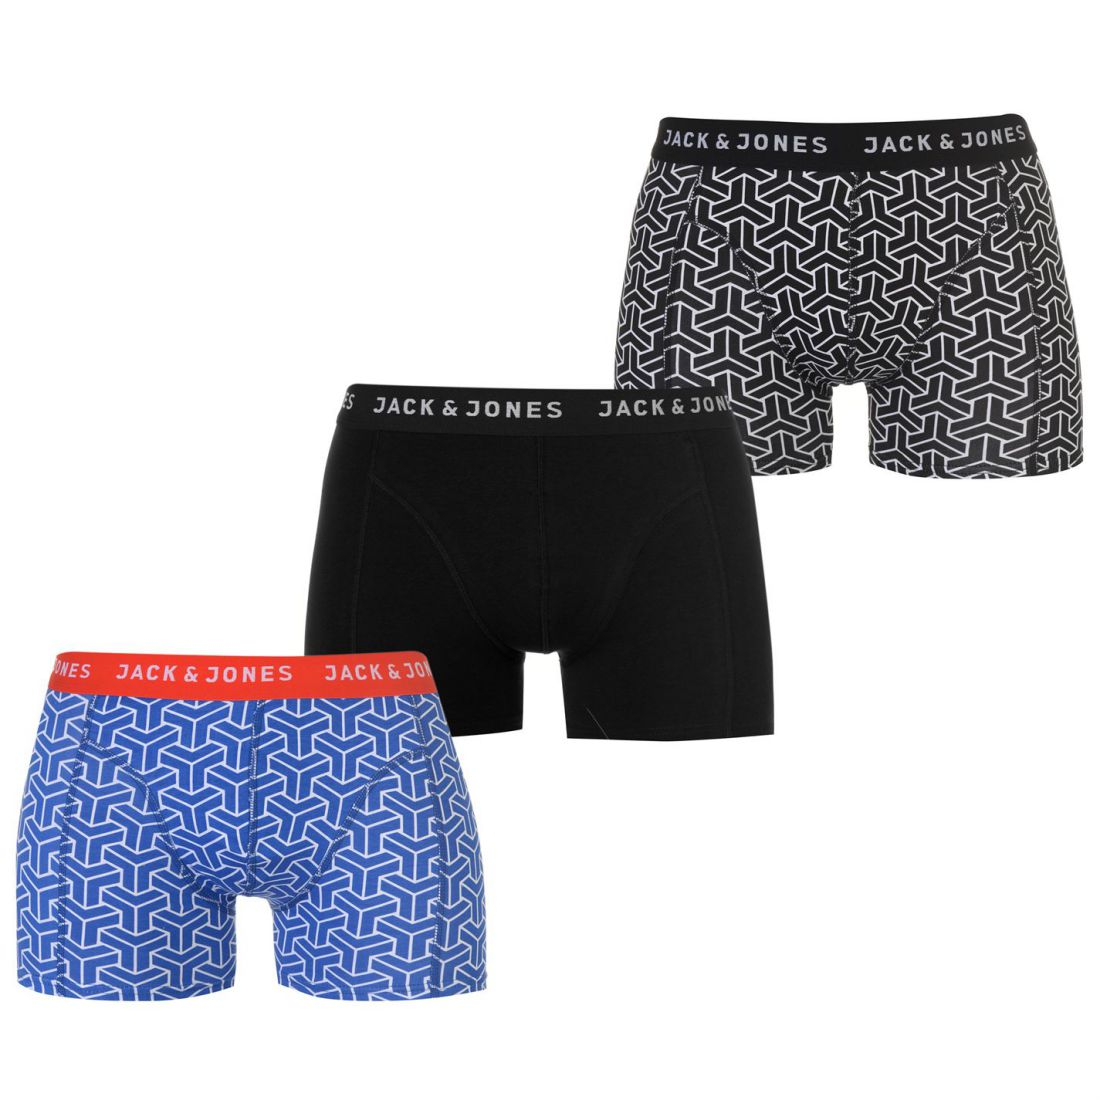 87ab26578f Jack and Jones Irvine 3 Pack Trunks Mens Gents Underclothes ...